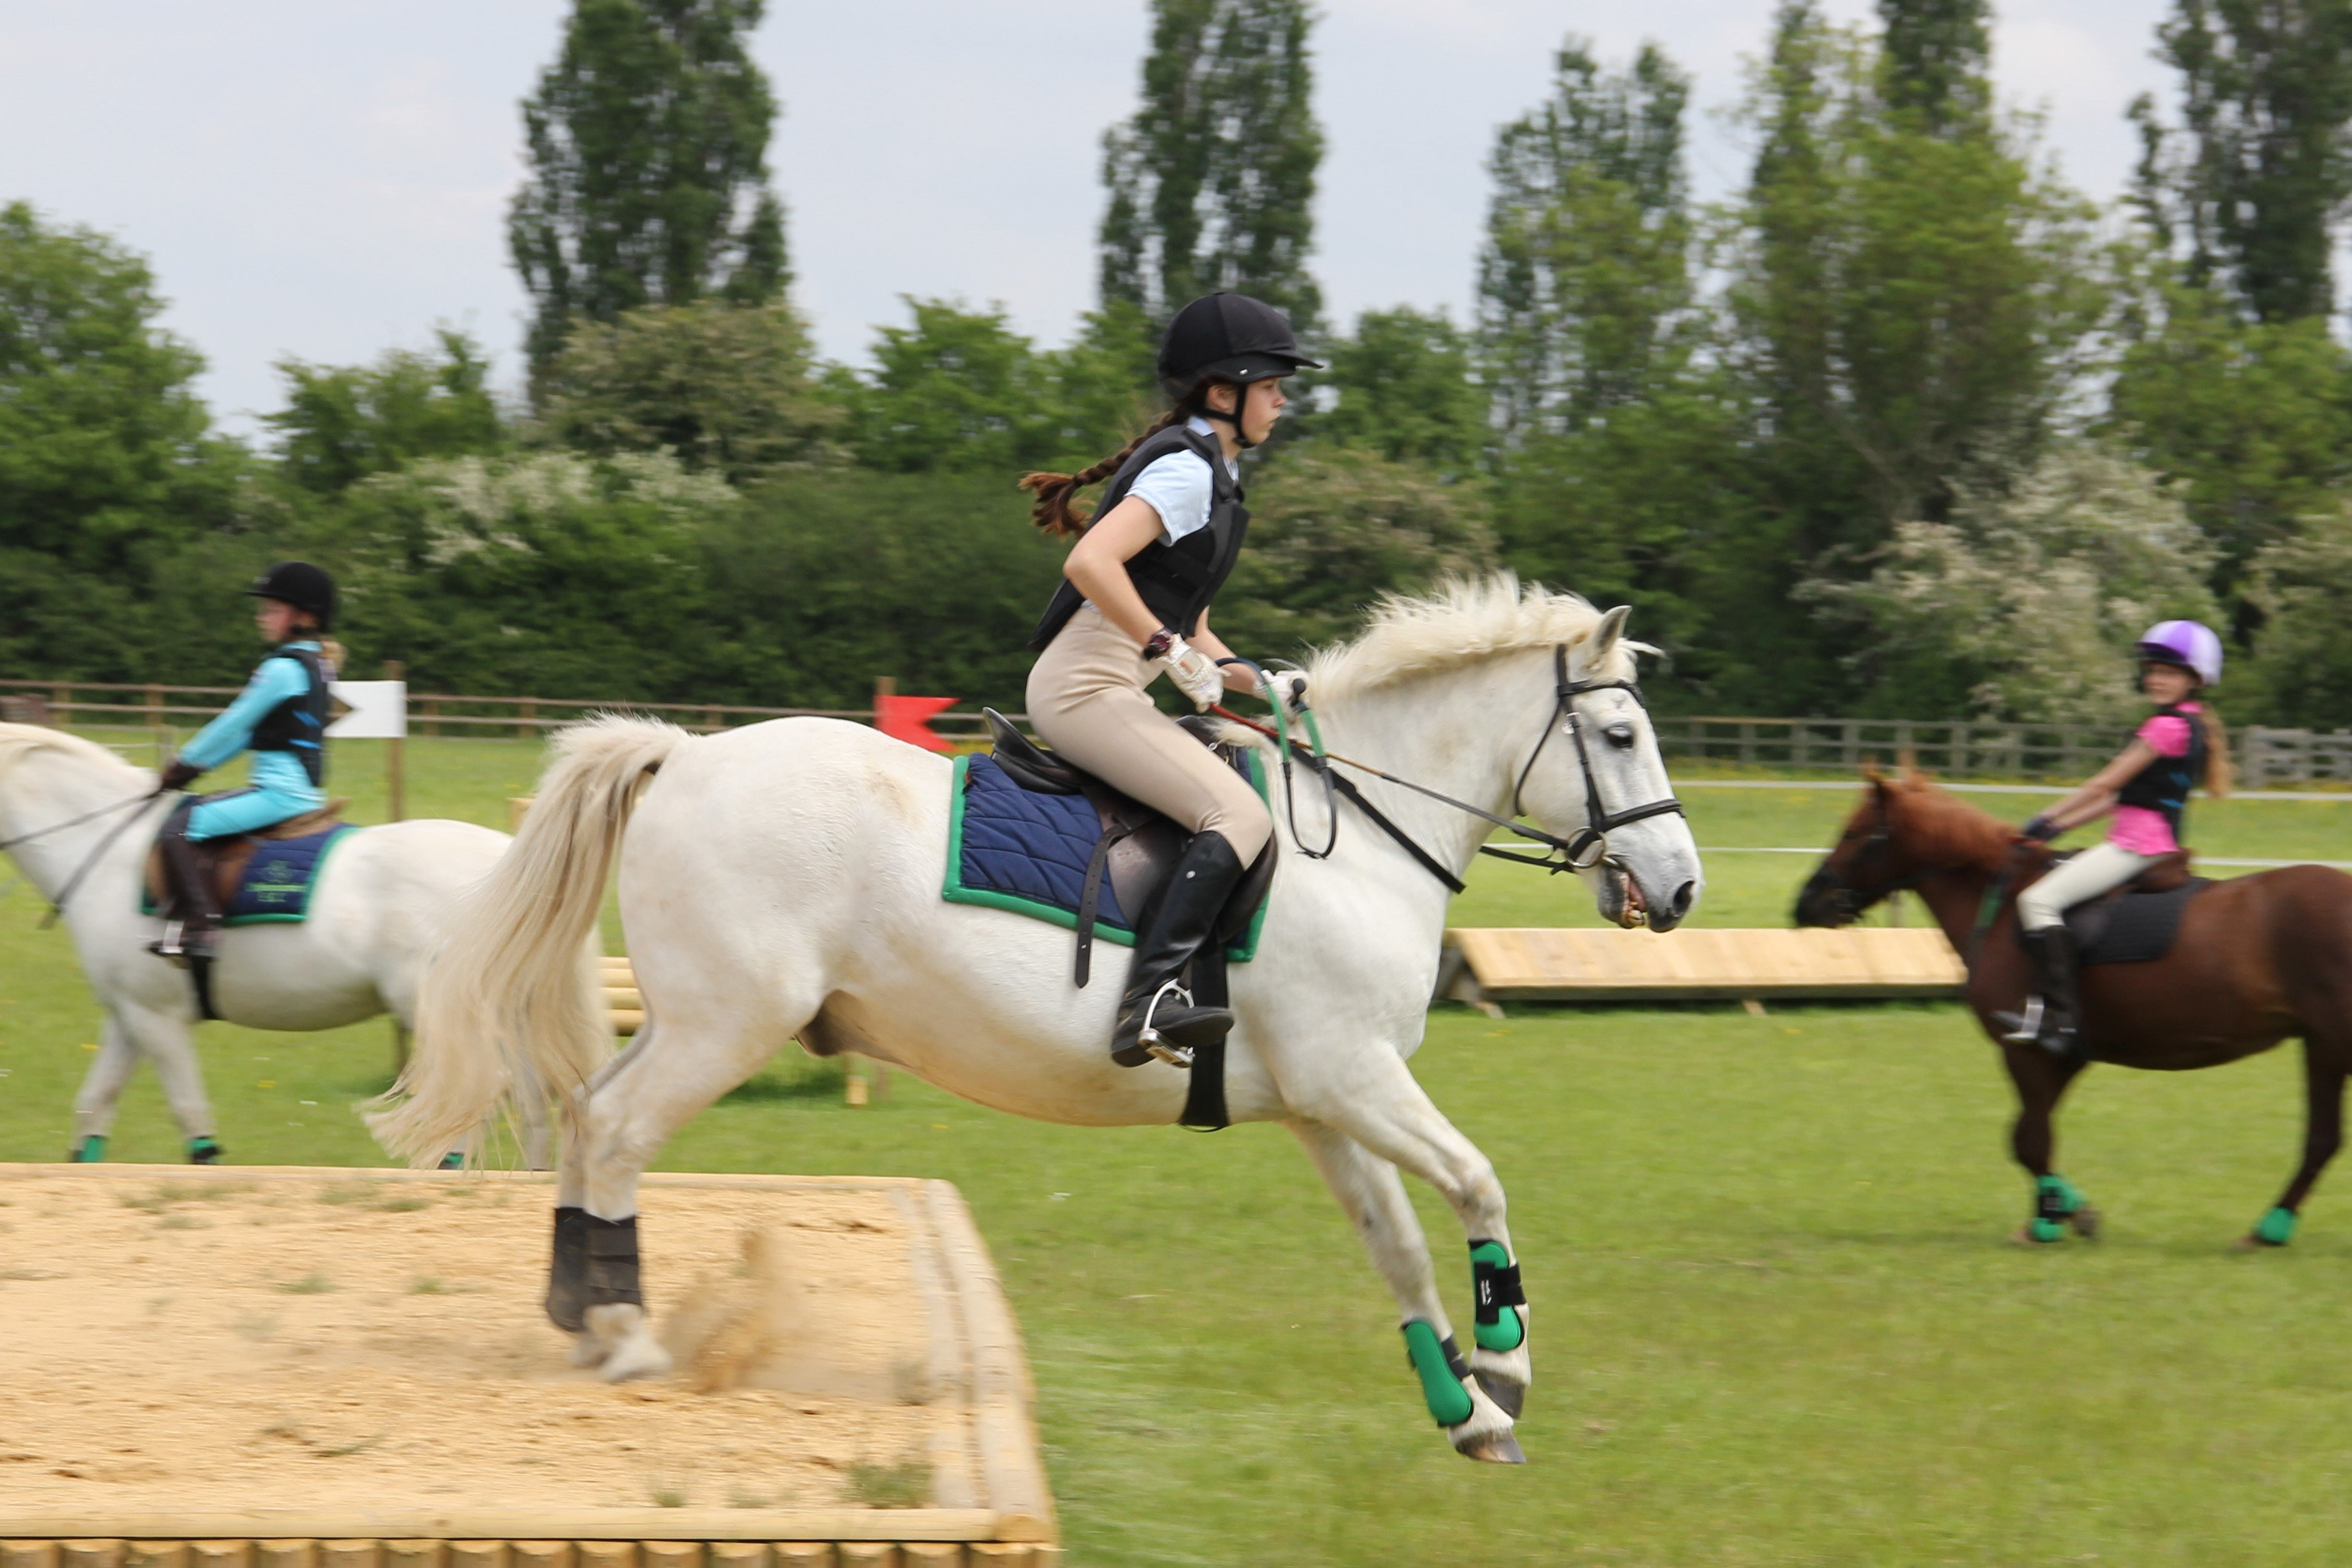 Horse Riding Lessons In Billericay Chelmsford Equestrian